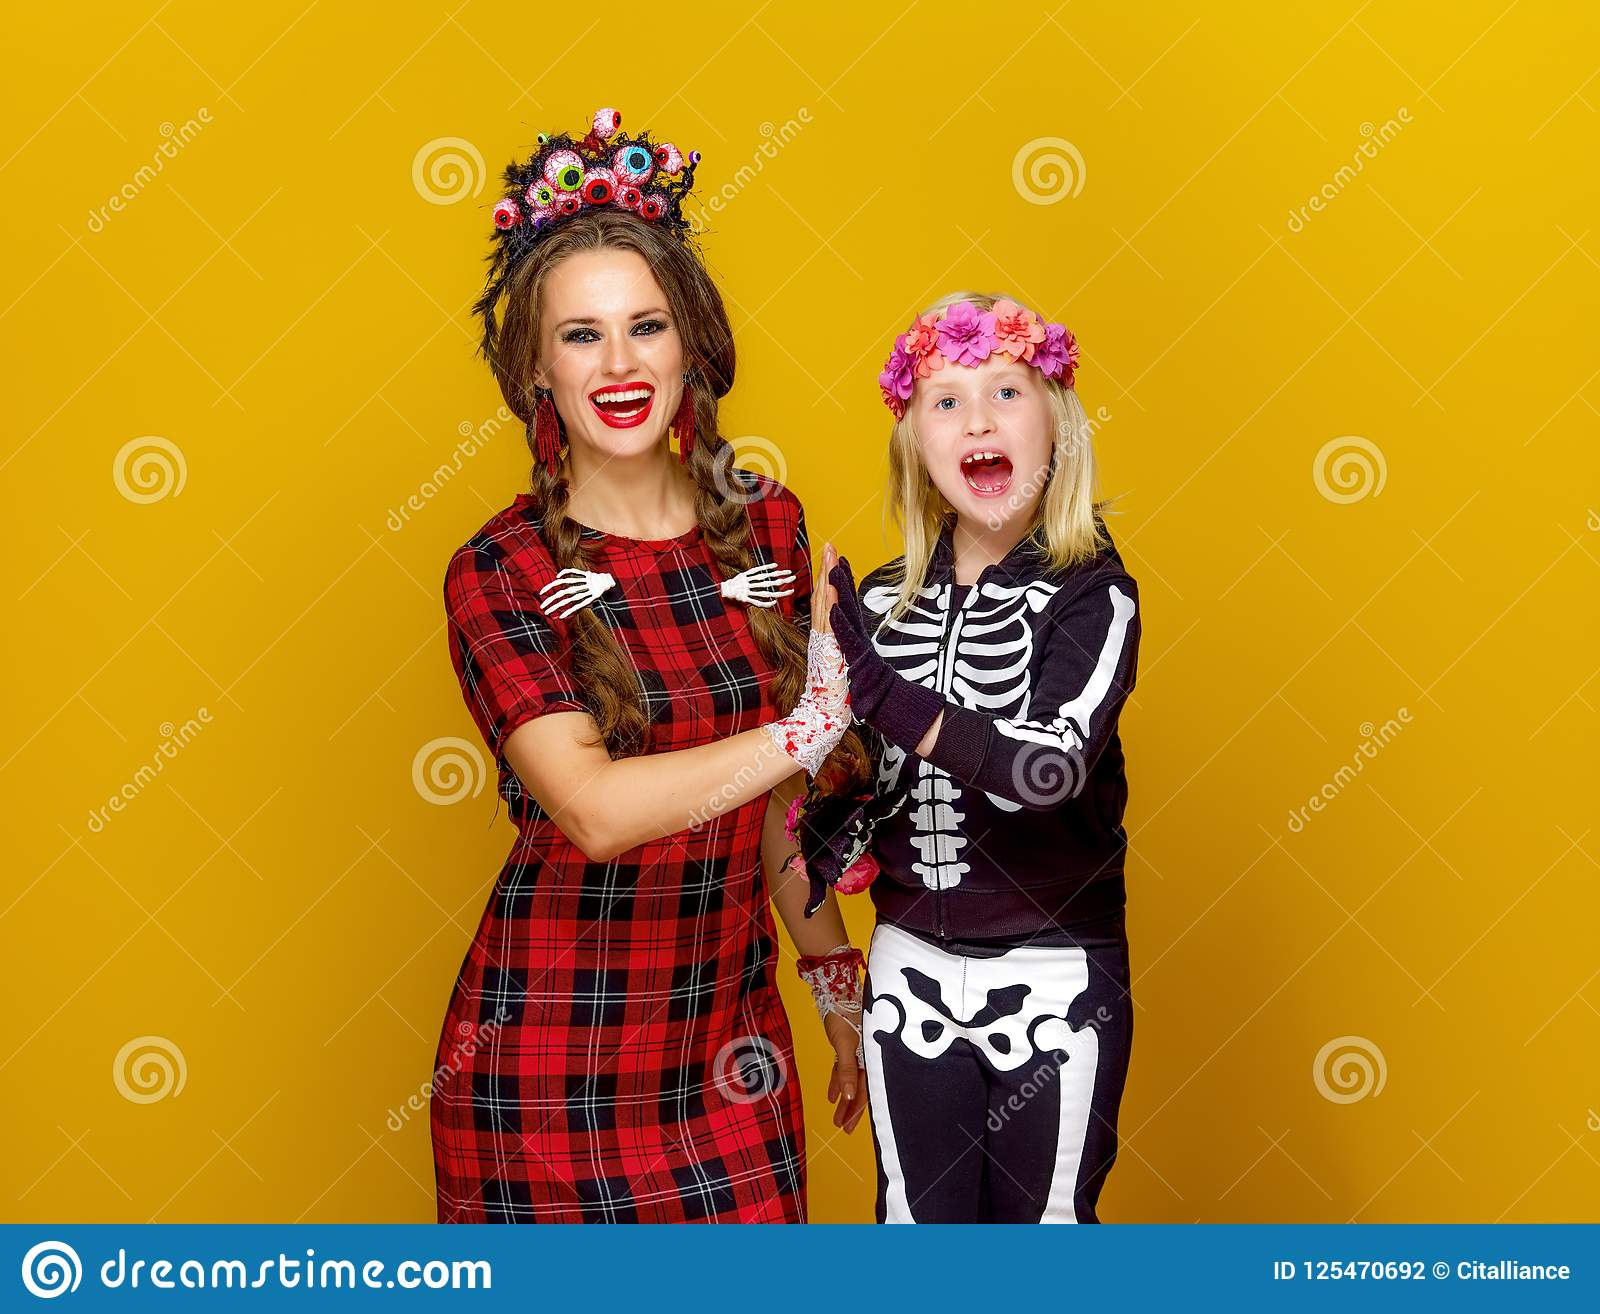 Happy modern mother and child in halloween costume high five